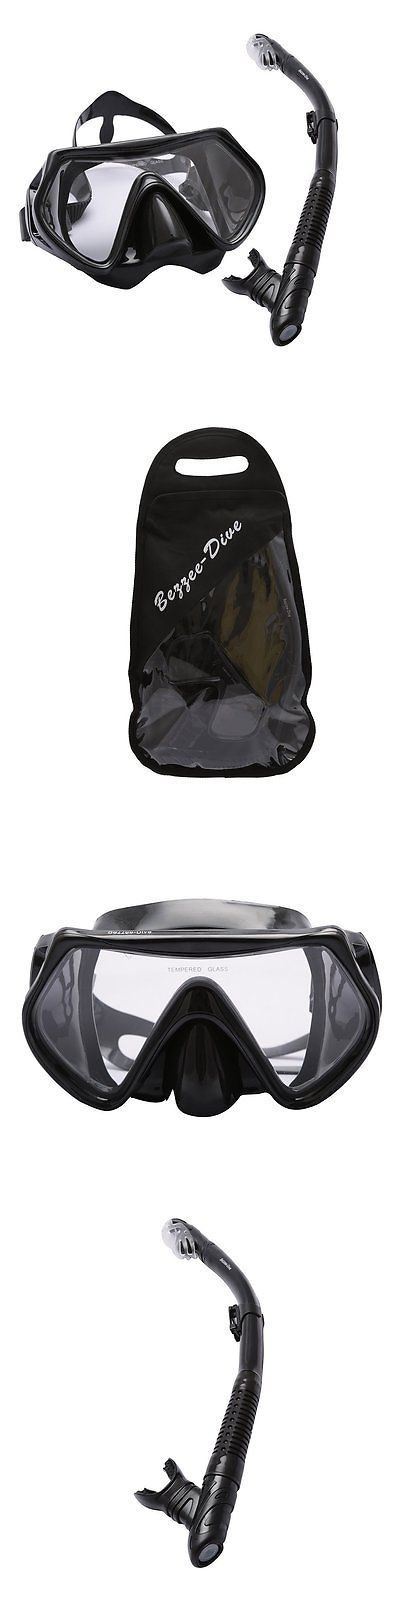 Masks 71161: Diving Mask And Dry Snorkel Set By Bezzee-Dive - Watertight Mask With Anti-Fog - -> BUY IT NOW ONLY: $48.66 on eBay!